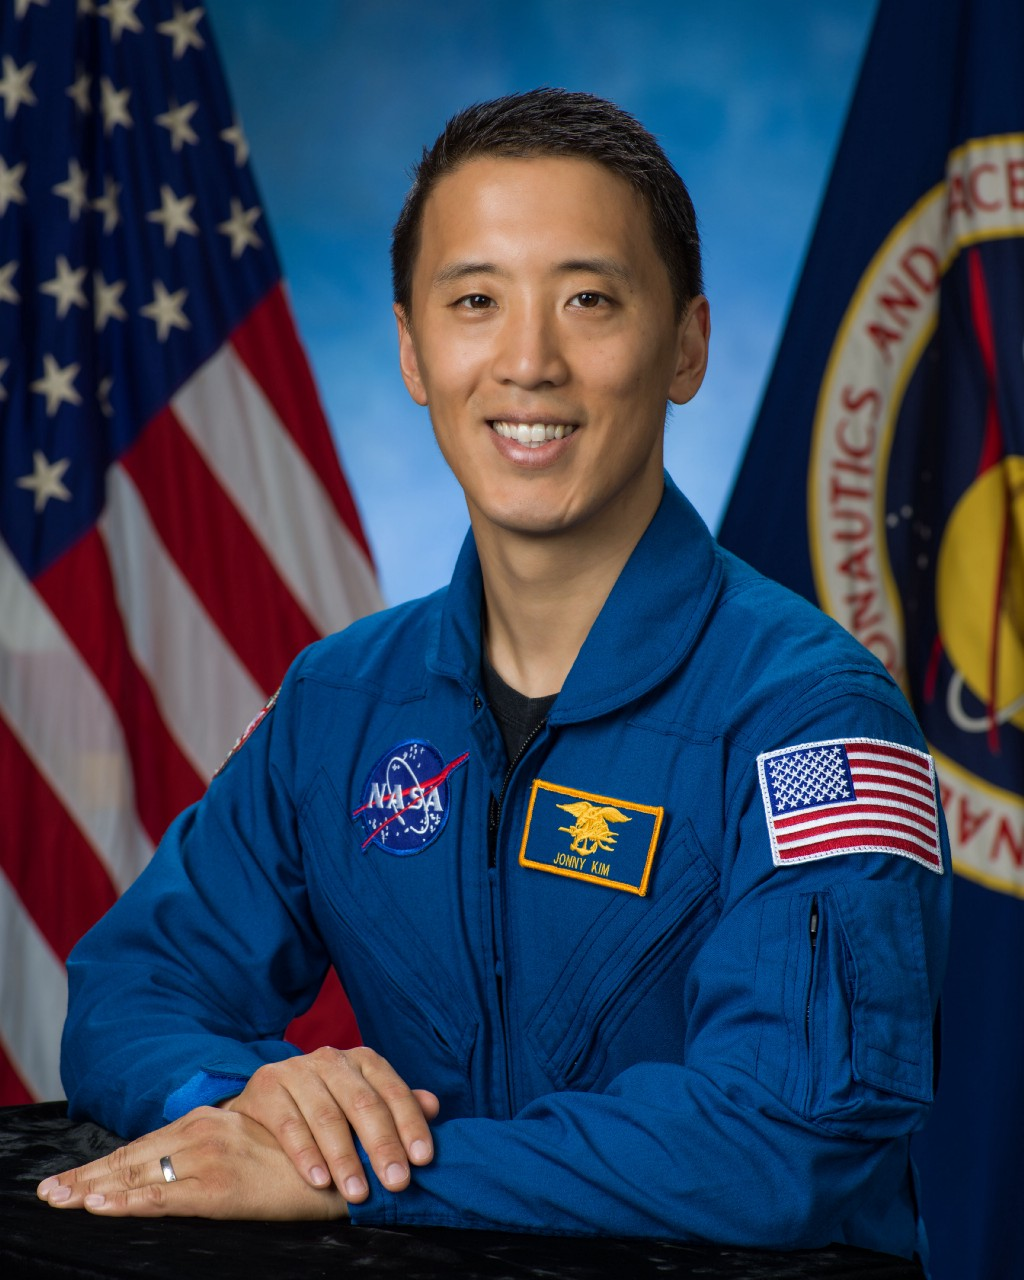 Helpless Kid Gets Abused by Dad…Becomes Navy Seal, Doctor, and Astronaut